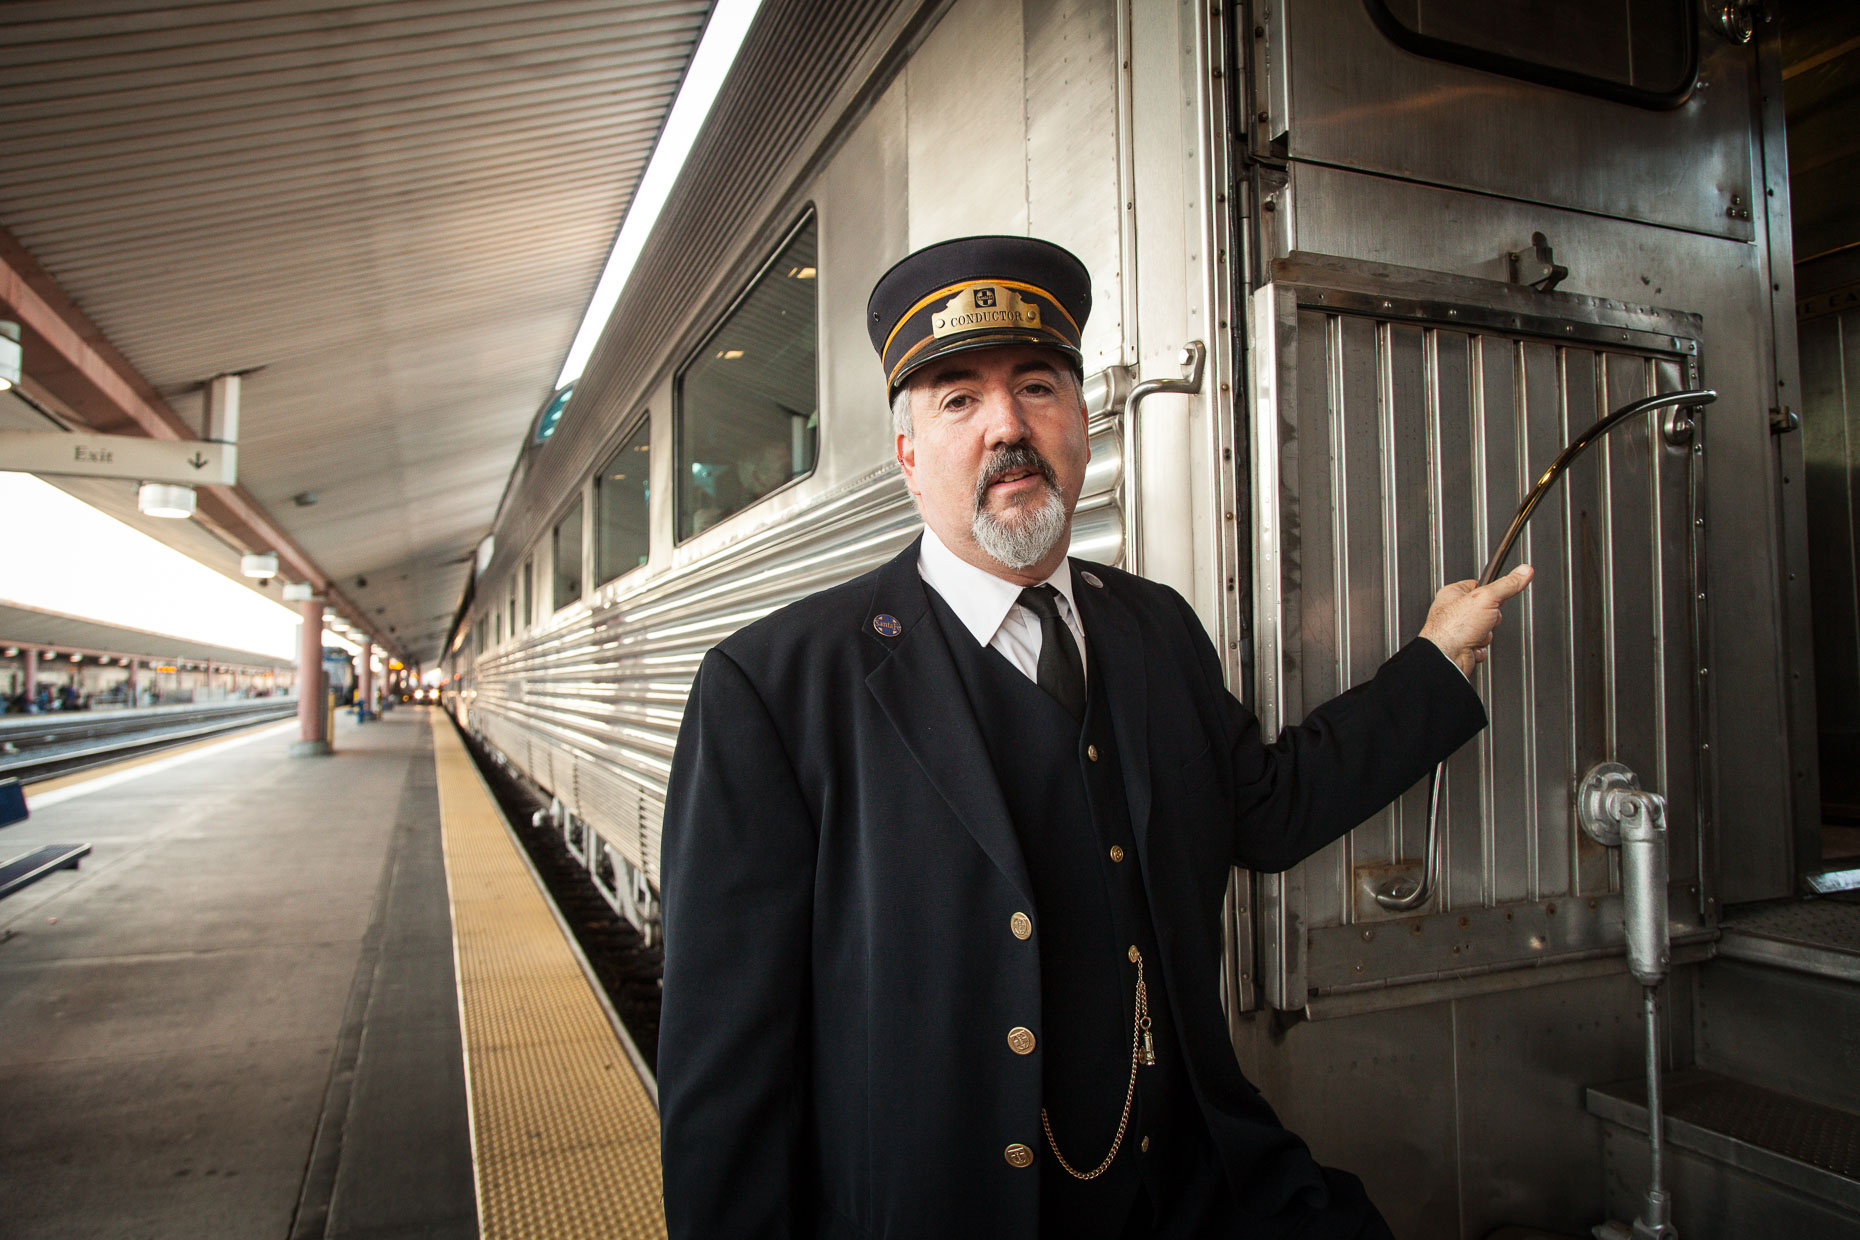 Portrait of train conductor standing near train doorway at Union Station in Los Angeles, California.